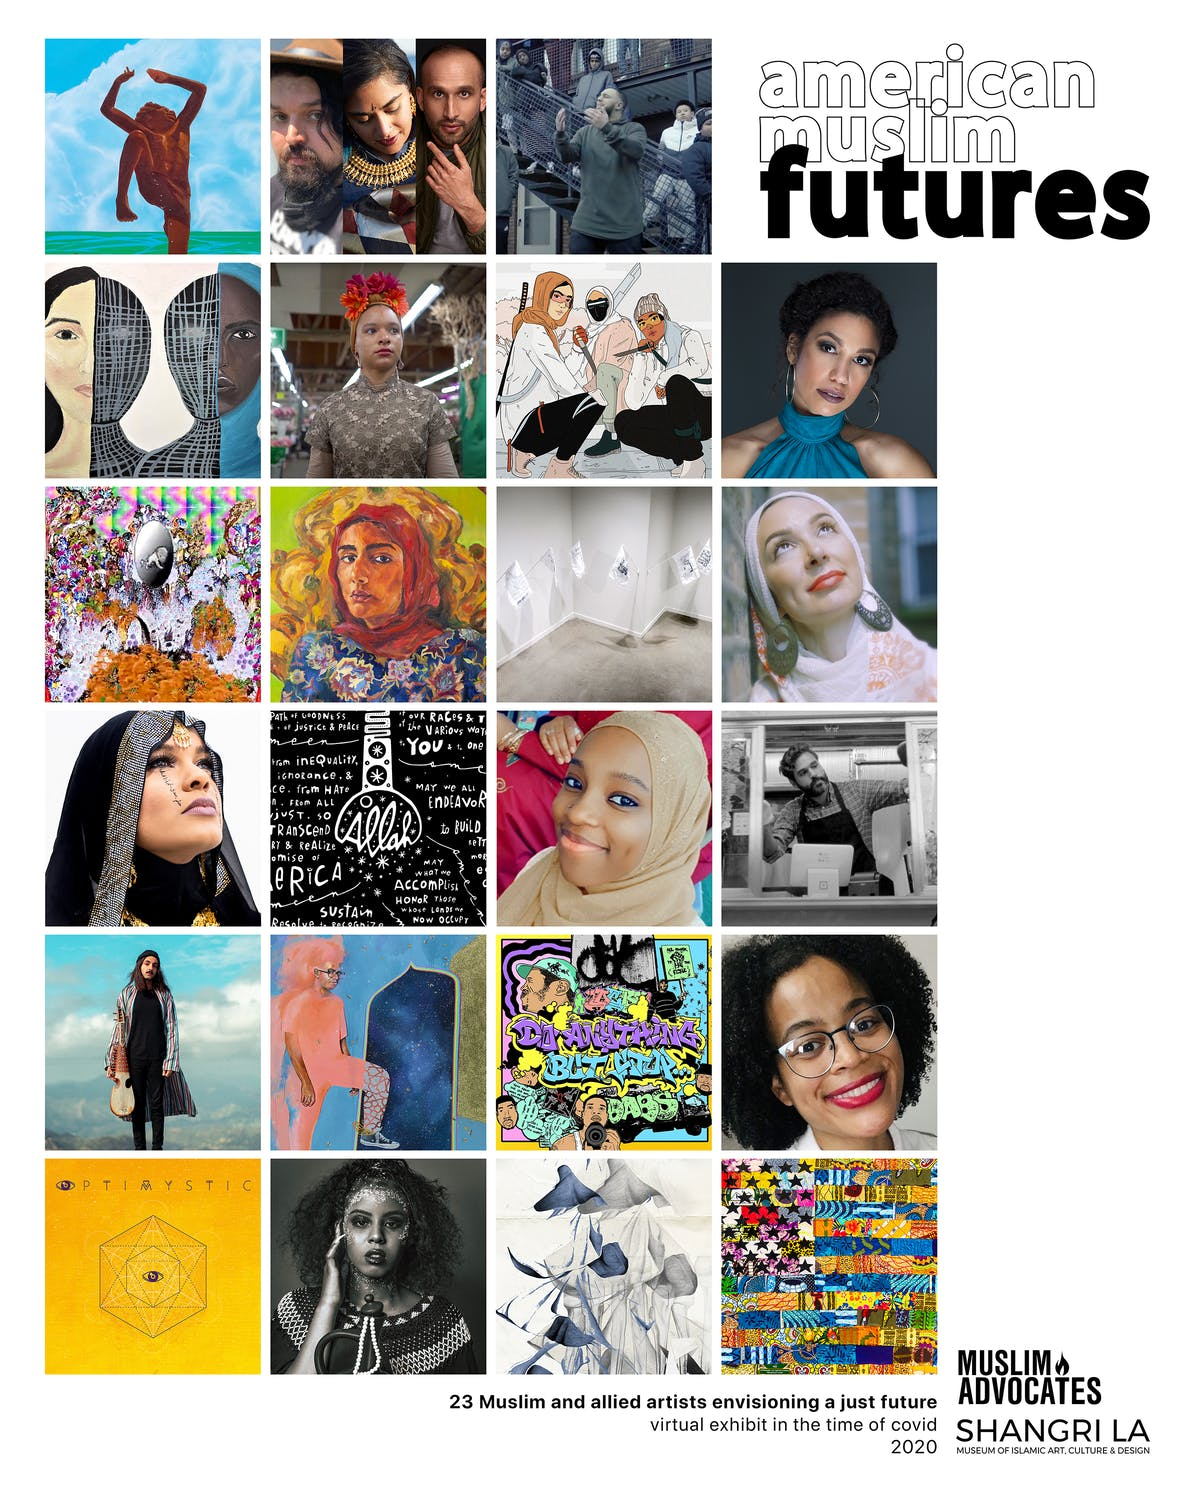 Image of artists and their artwork from the American Muslim Futures exhibition.